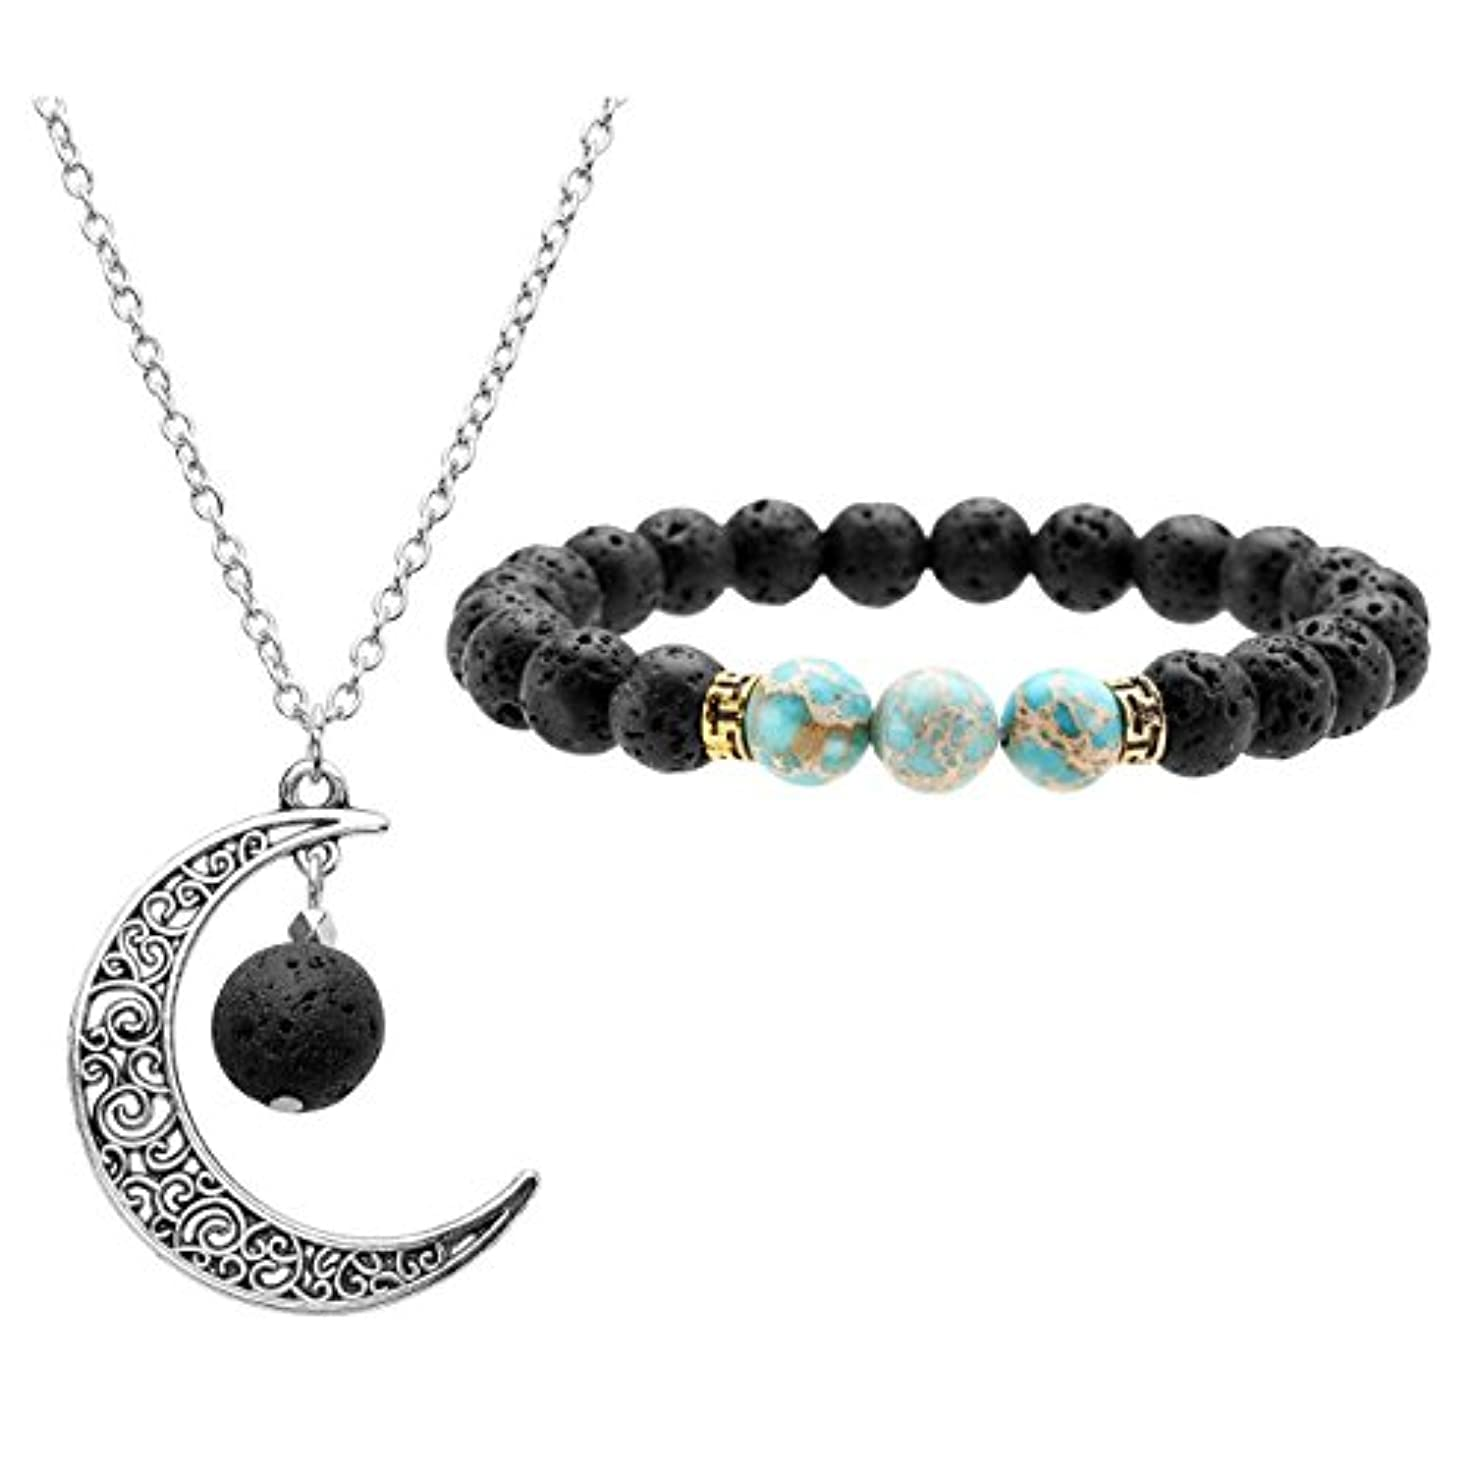 JOVIVI Lava Stone Aromatherapy Essential Oil Diffuser Necklace Bracelet Set- Crescent Moon Jewellery